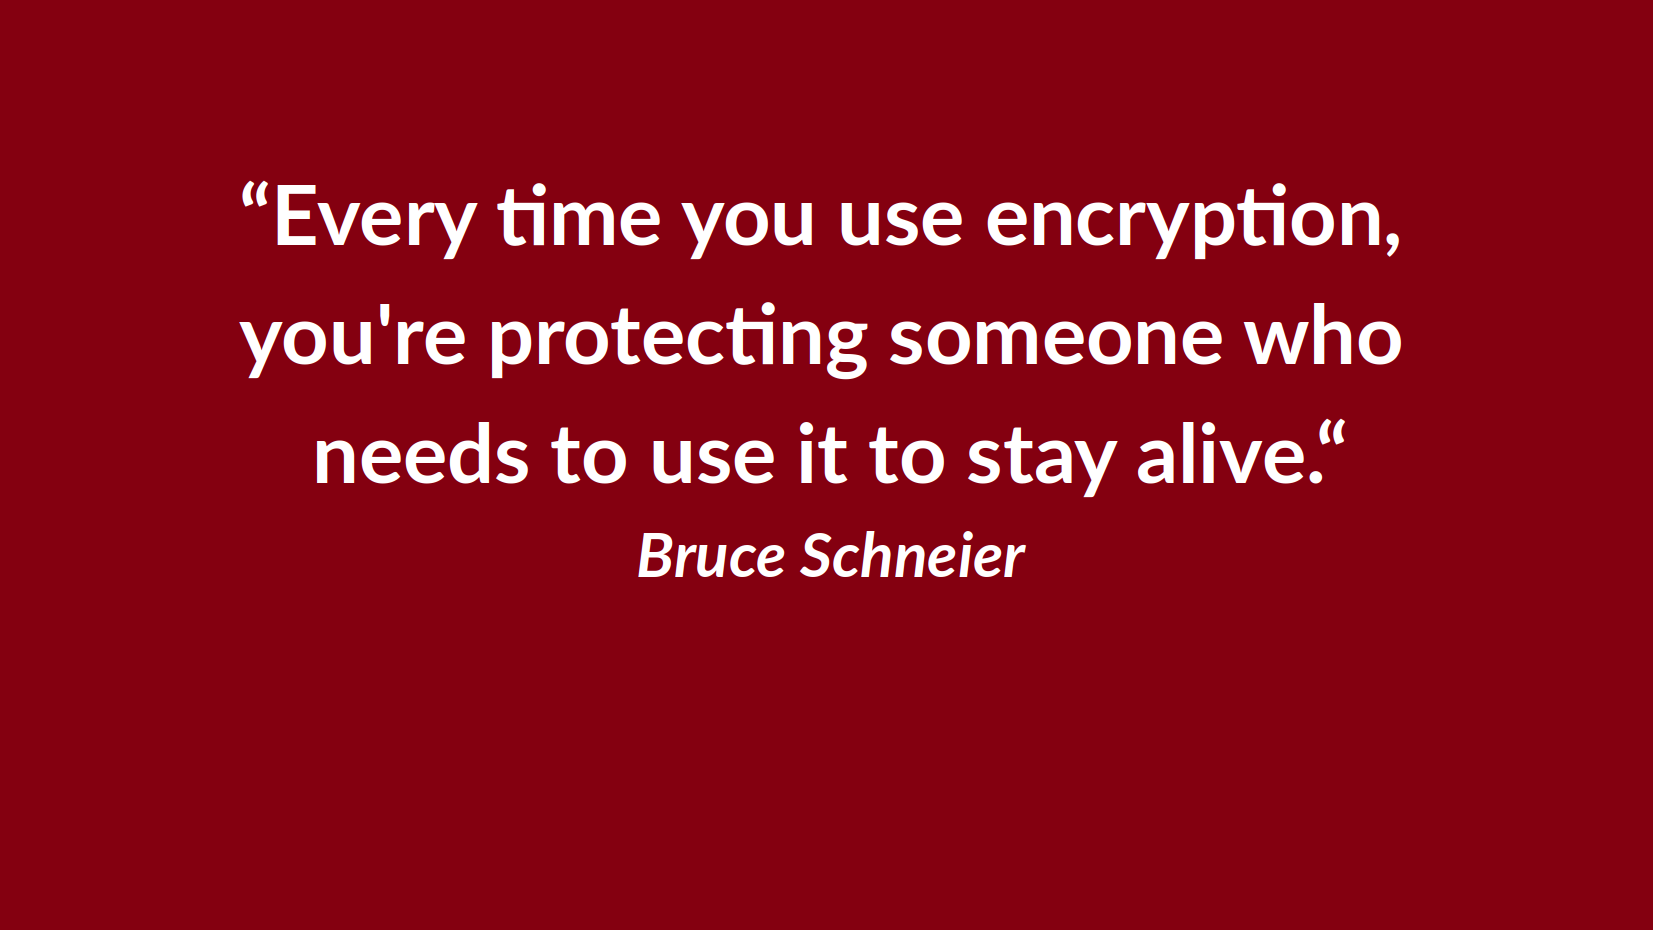 Data privacy day: Encryption protects everyone's privacy